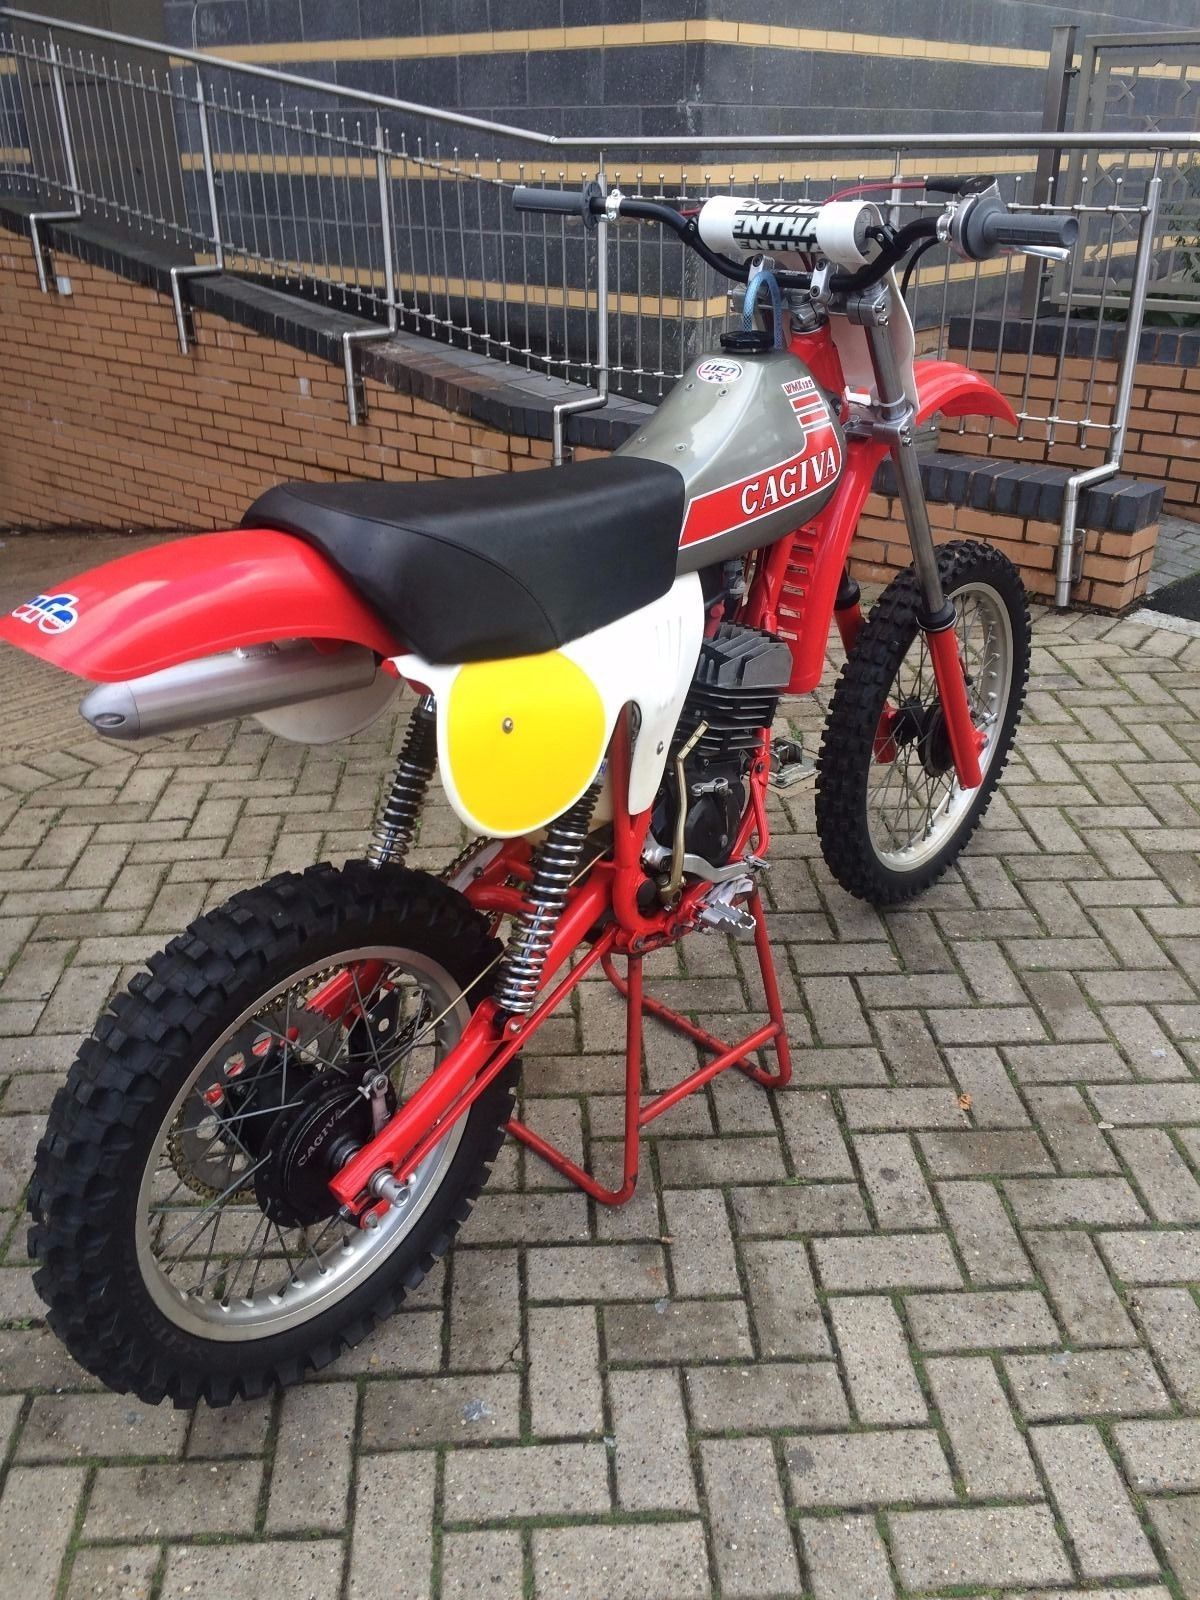 Here we have a Cagiva 125 WRX 1981 air cooled twinshock